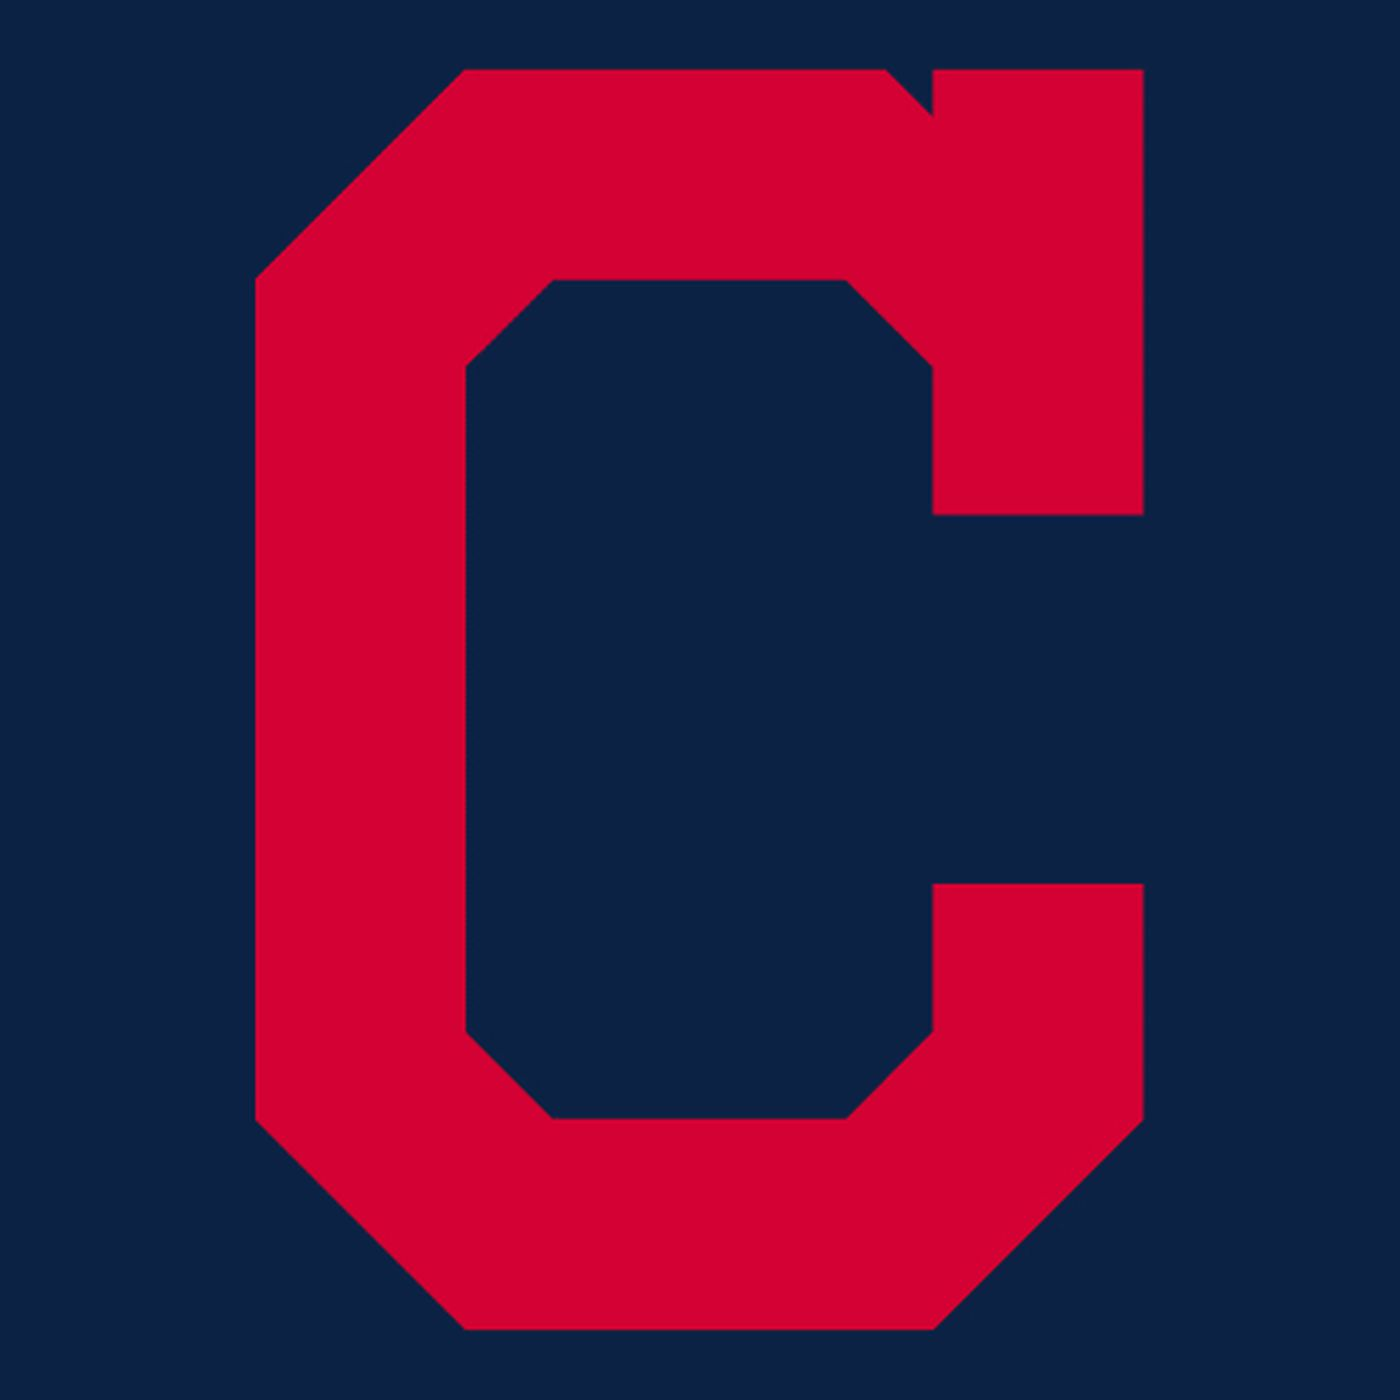 famous-baseball-logos-in-the-mlb-cleveland-indians